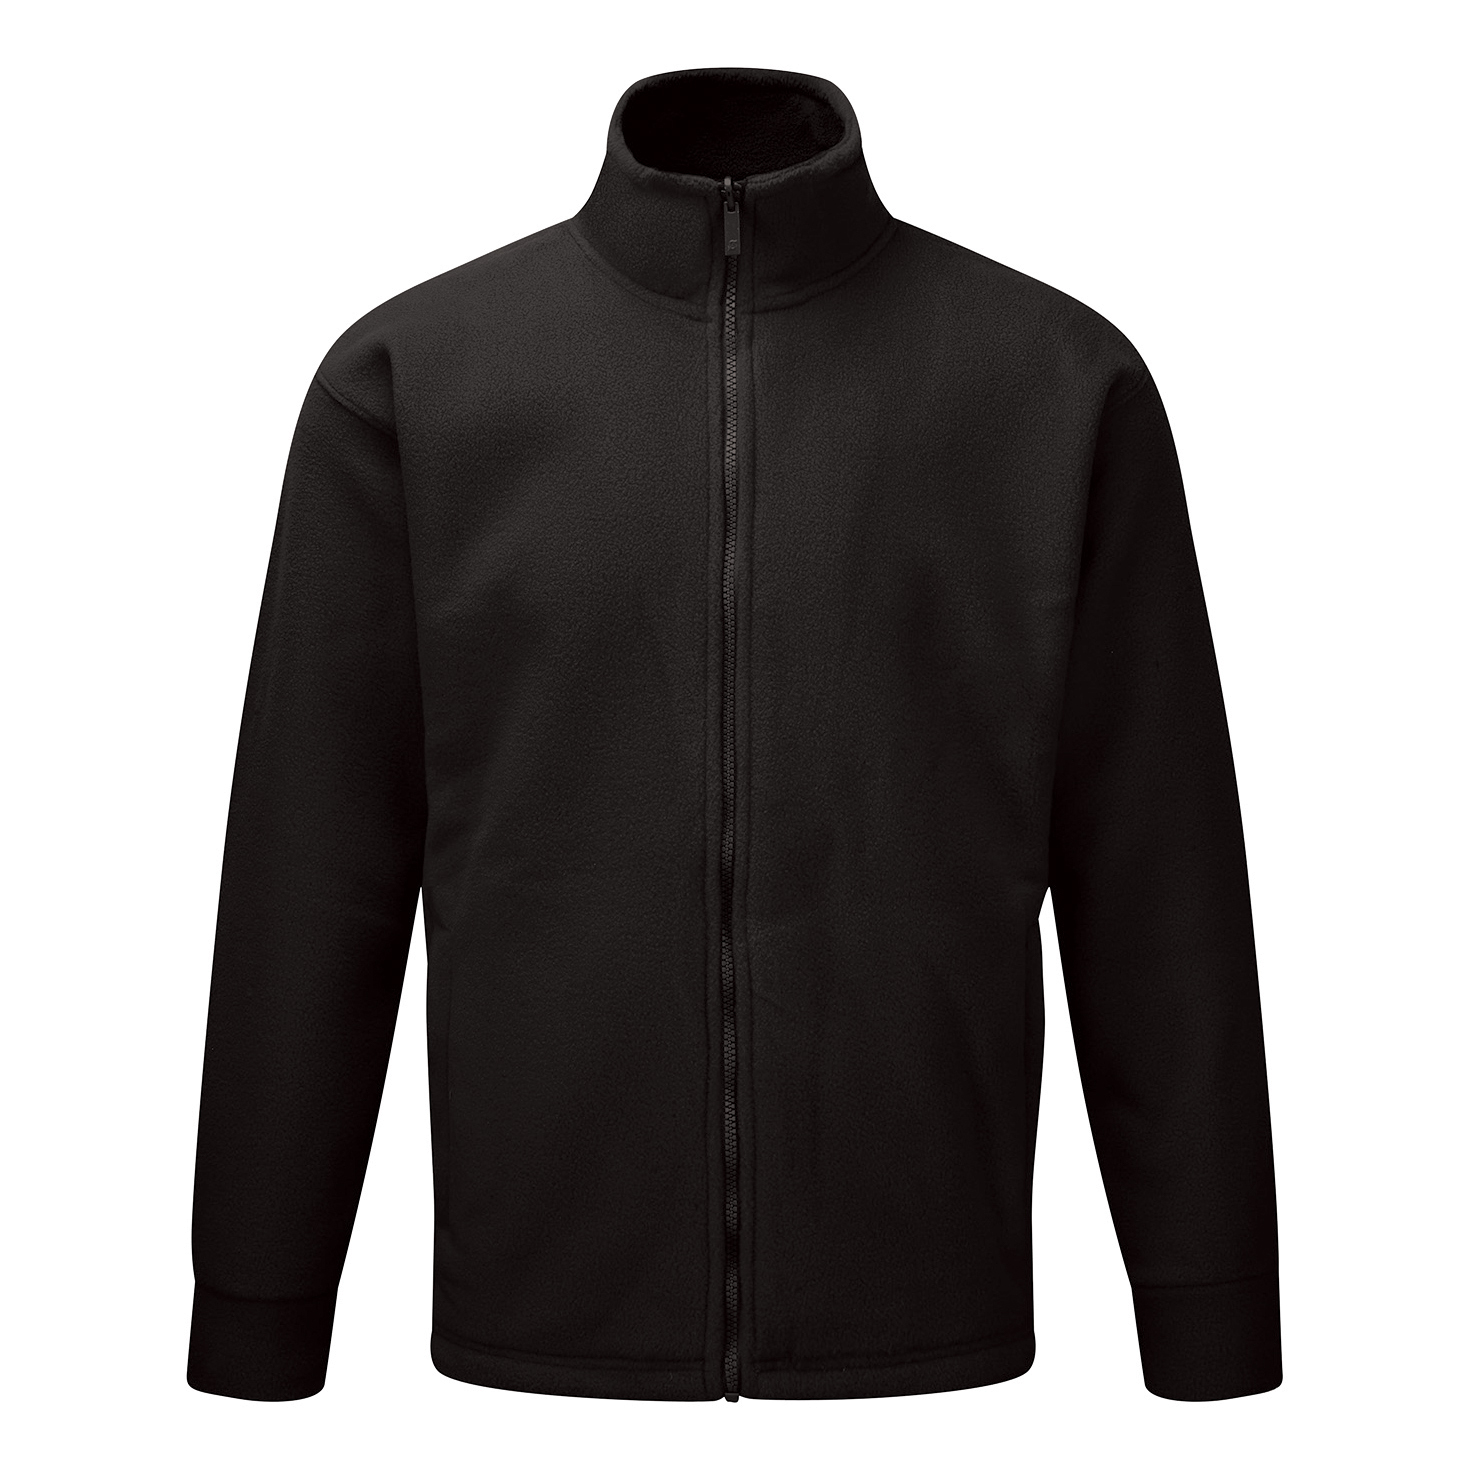 ST Basic Fleece Jacket Elasticated Cuffs and Full Zip Front XXXLarge Blk Ref 59076 *Approx 3 Day L/Time*